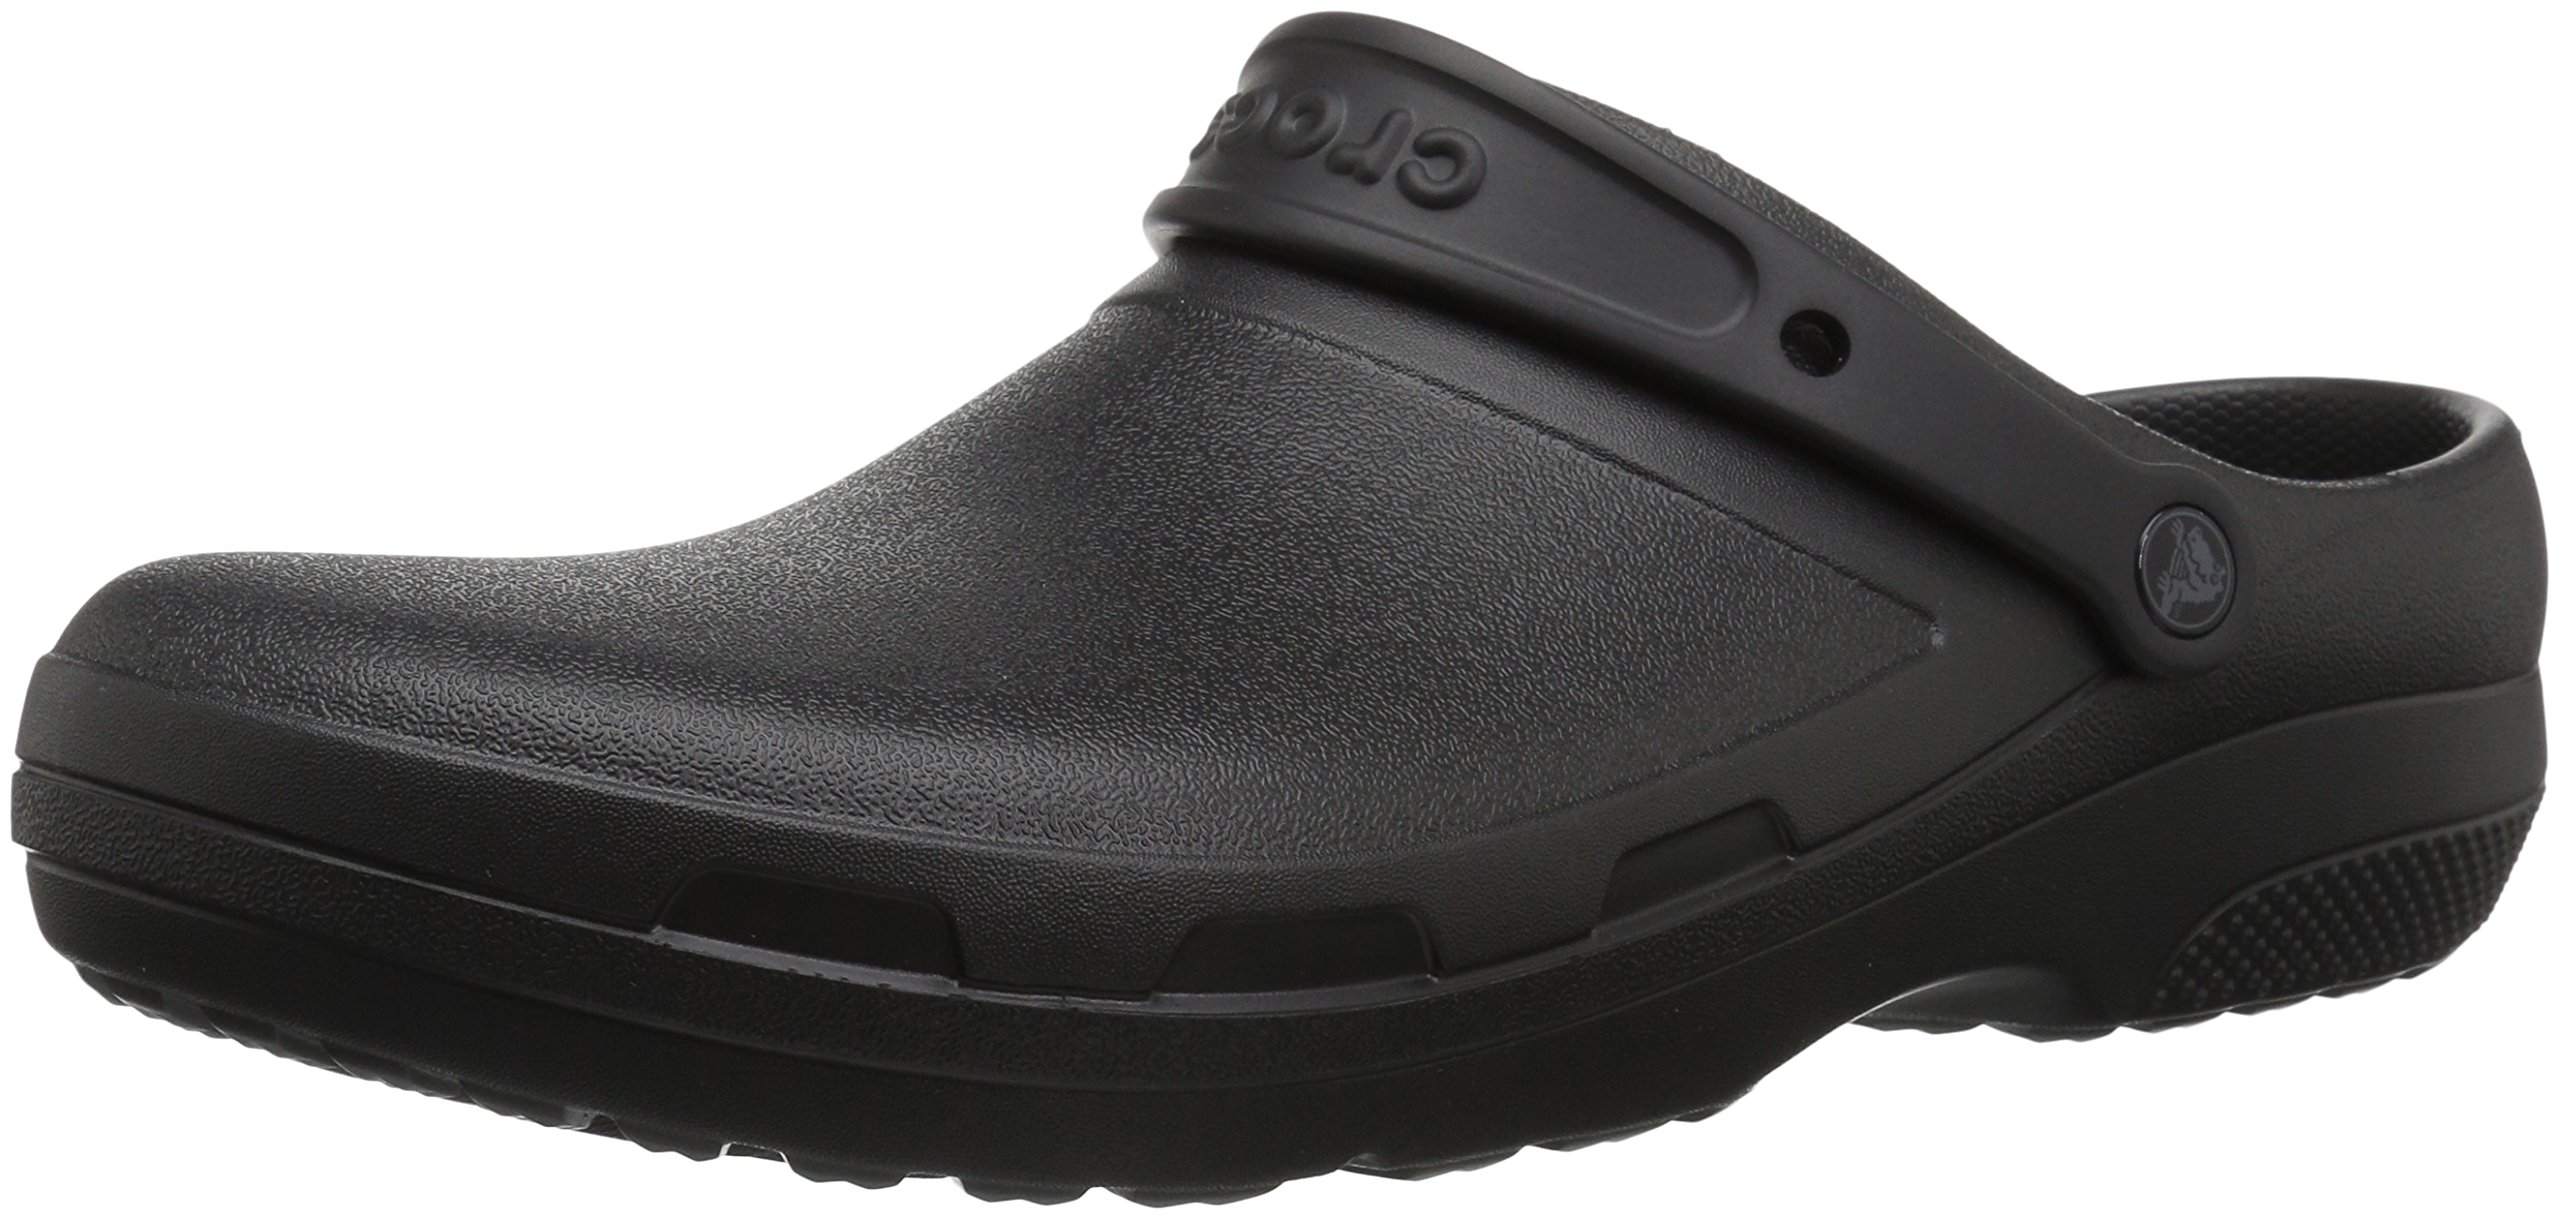 Crocs Specialist II Clog, Black, 6 US Men/ 8 US Women M US by Crocs